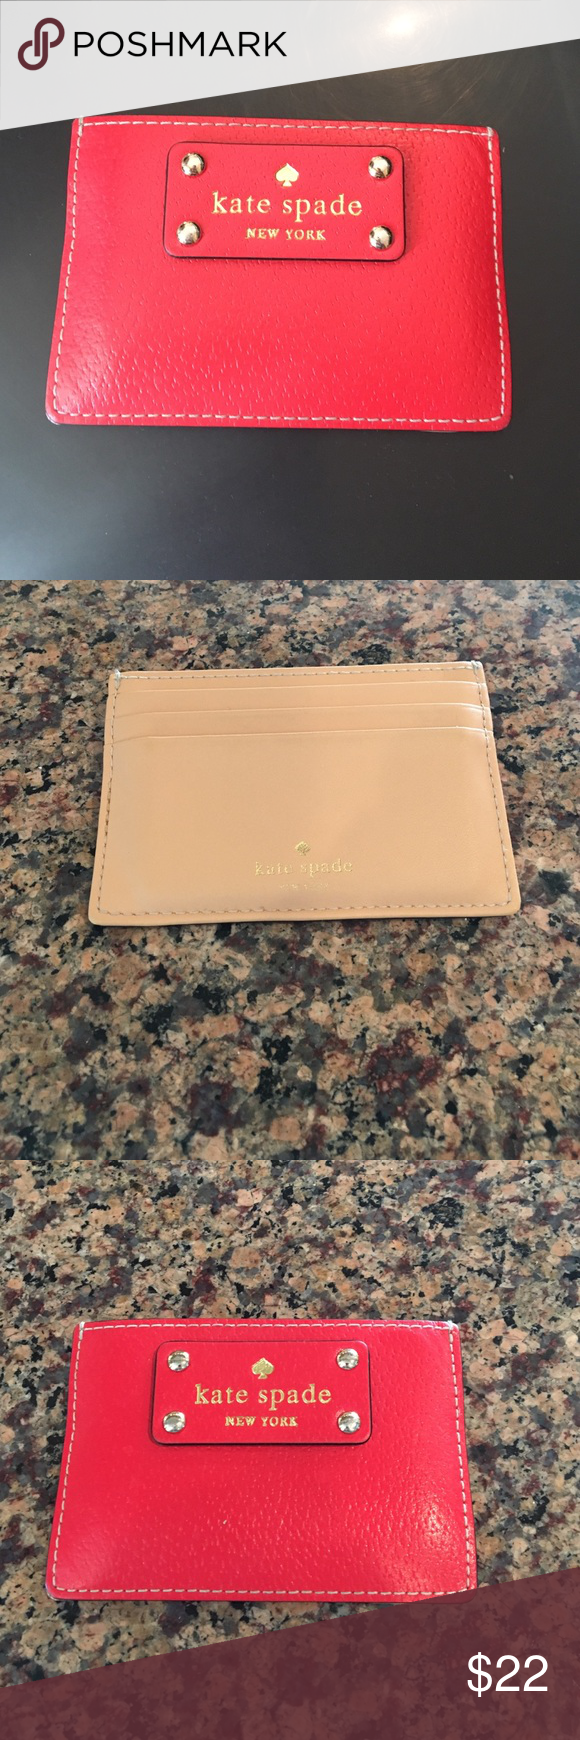 Kate Spade Card Holder Red Kate Spade Cars Holder- good condition! kate spade Bags Wallets